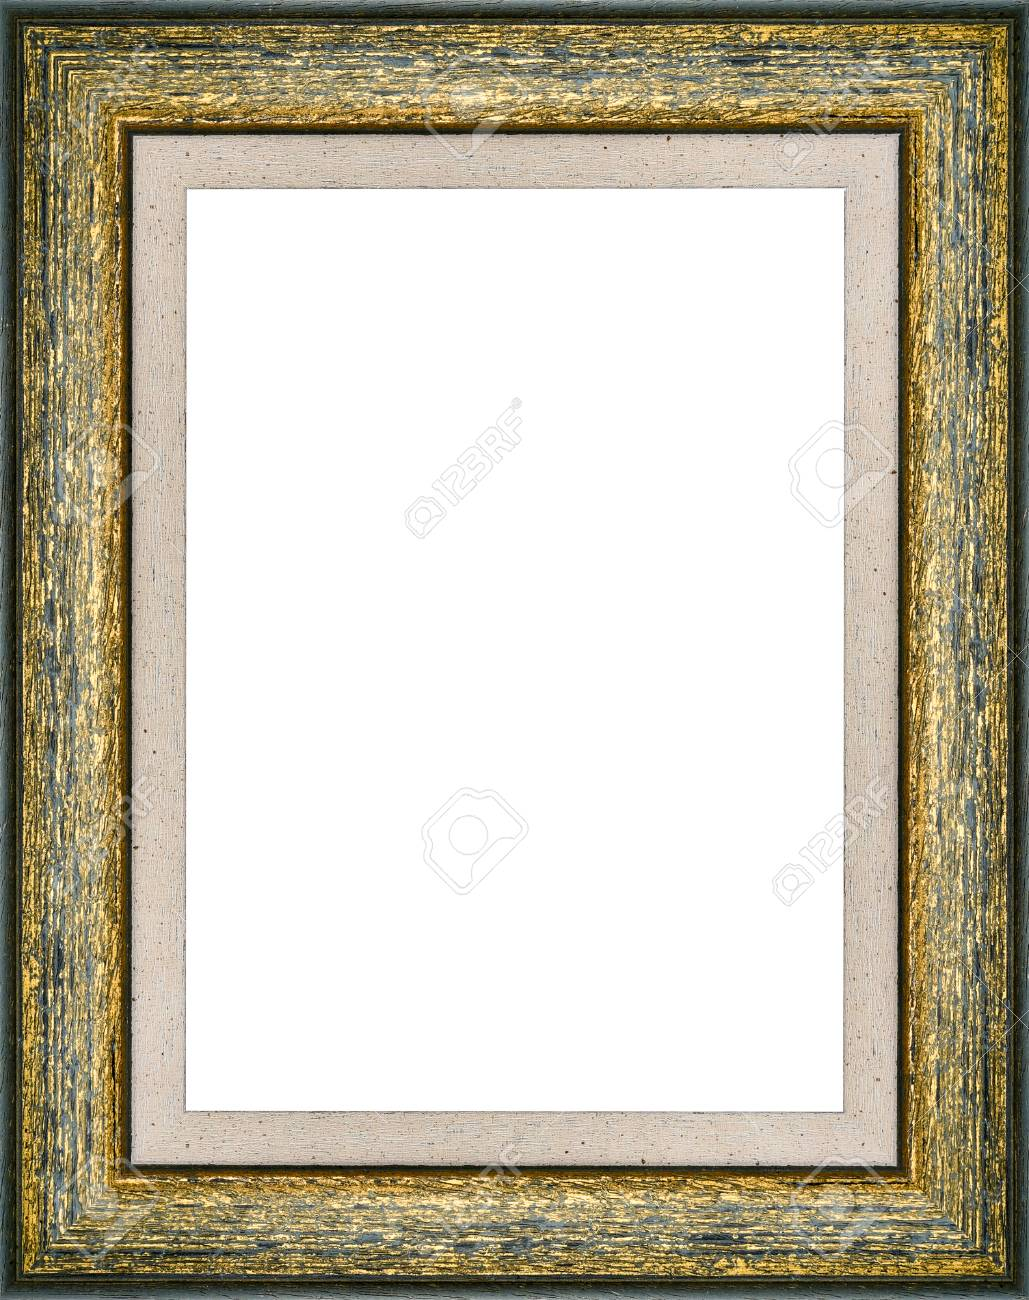 Wooden Green Vintage Picture Frame Isolated On White Background ...